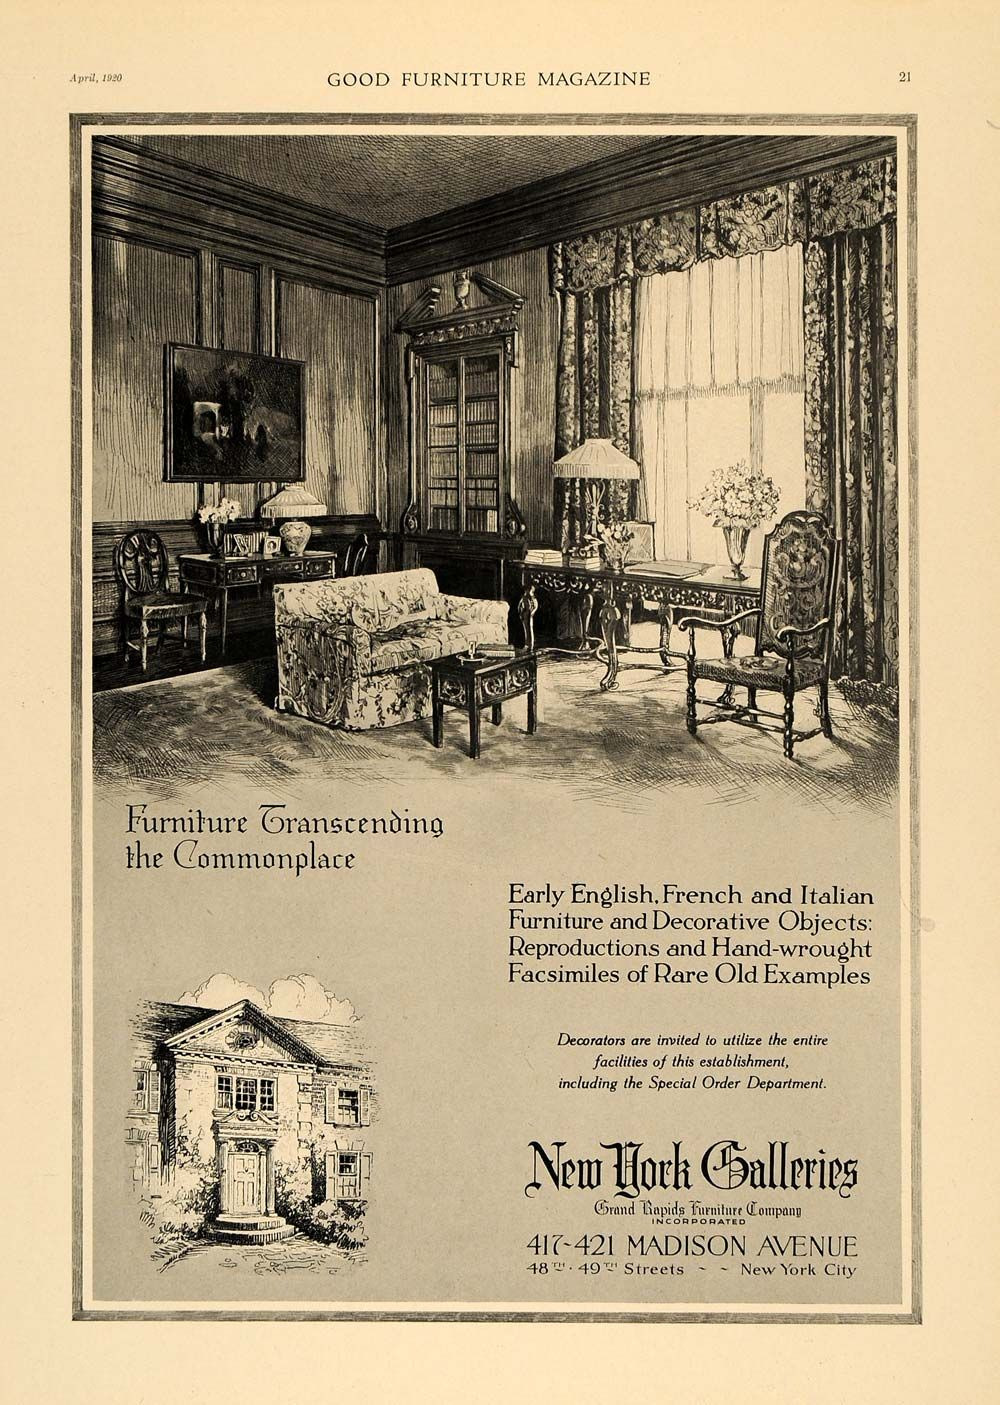 Grand Rapids Furniture Company Antique New A 1920 Advertisement by New York Galleries A Grand Rapids